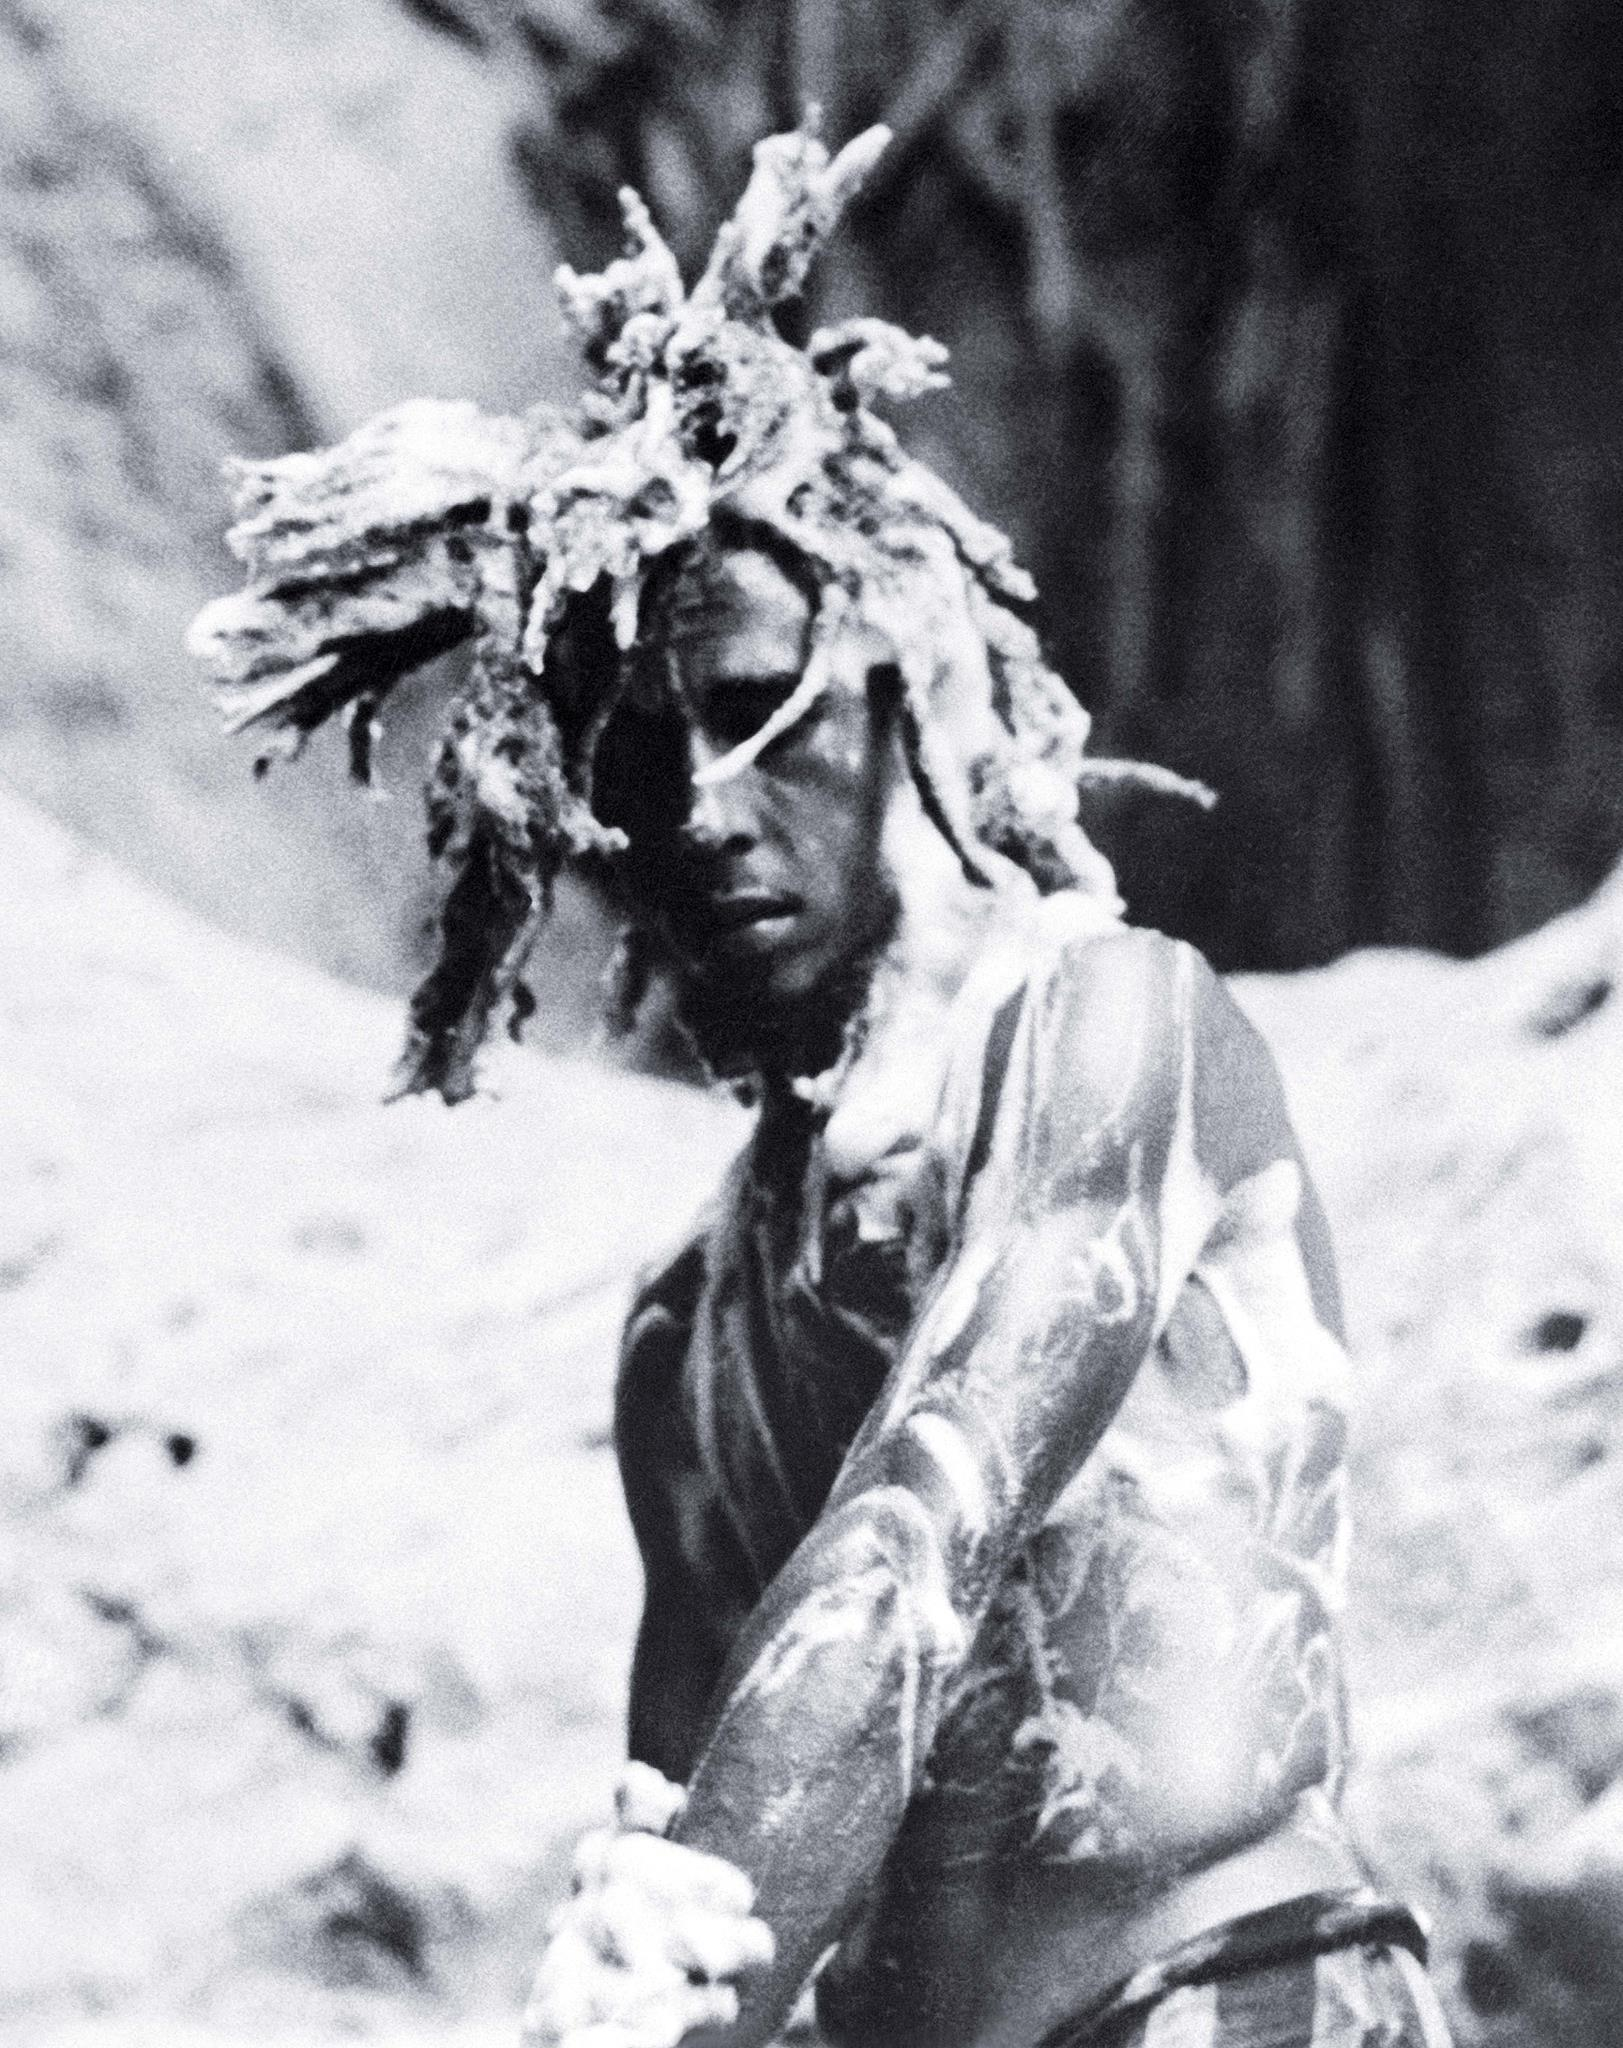 Peter Tosh - Legalize It /Equal Rights